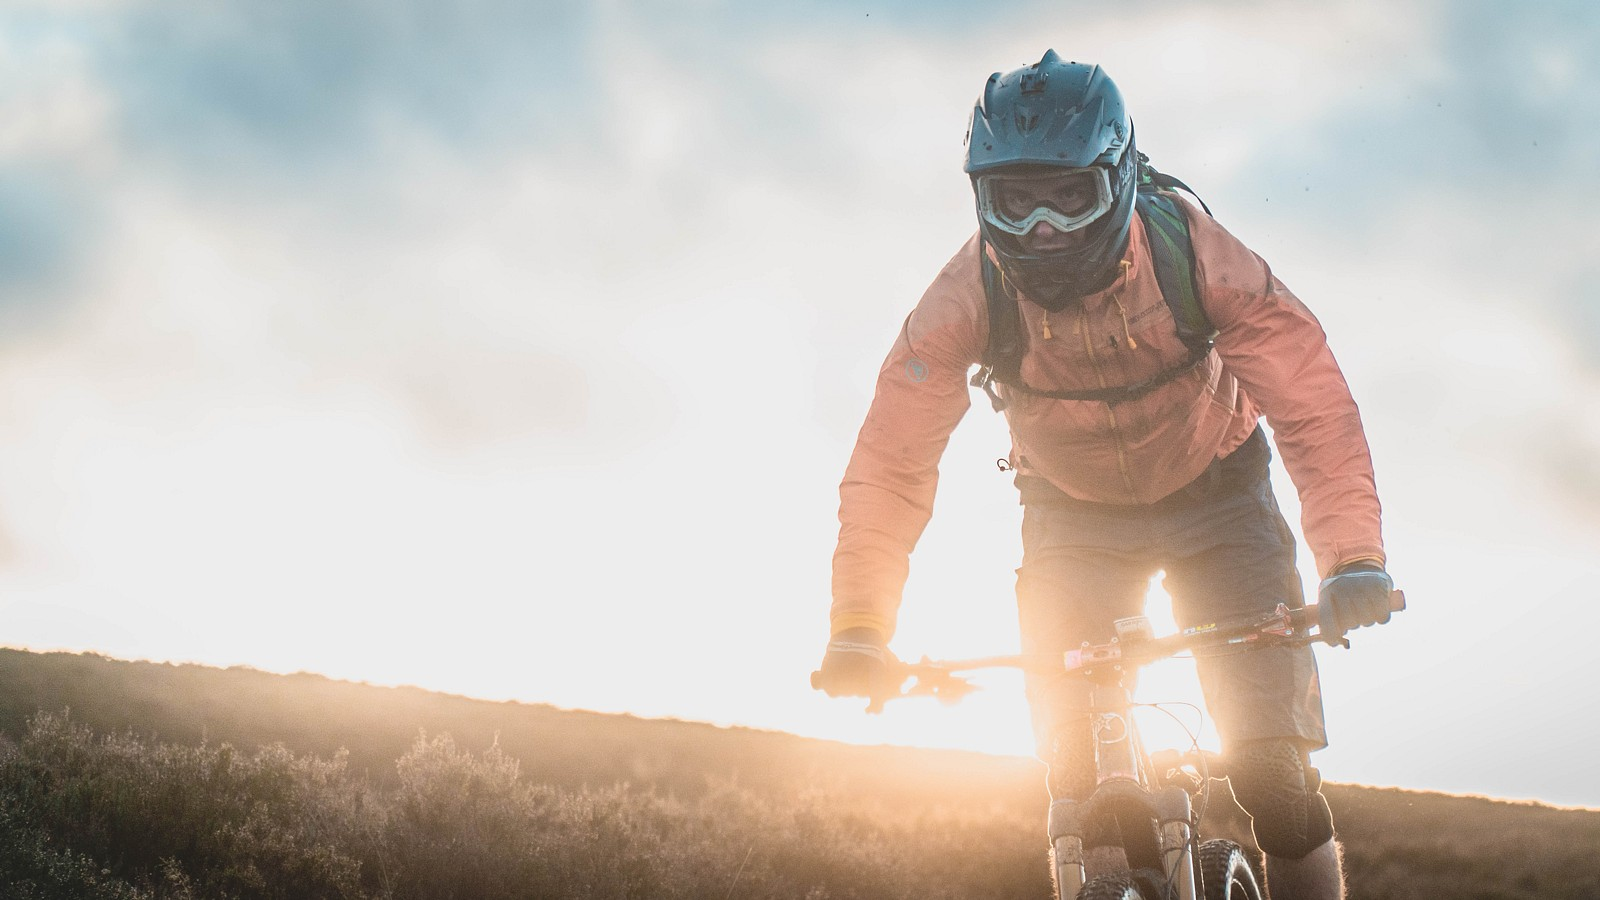 Golden Hour - Mushrum - Mountain Biking Pictures - Vital MTB